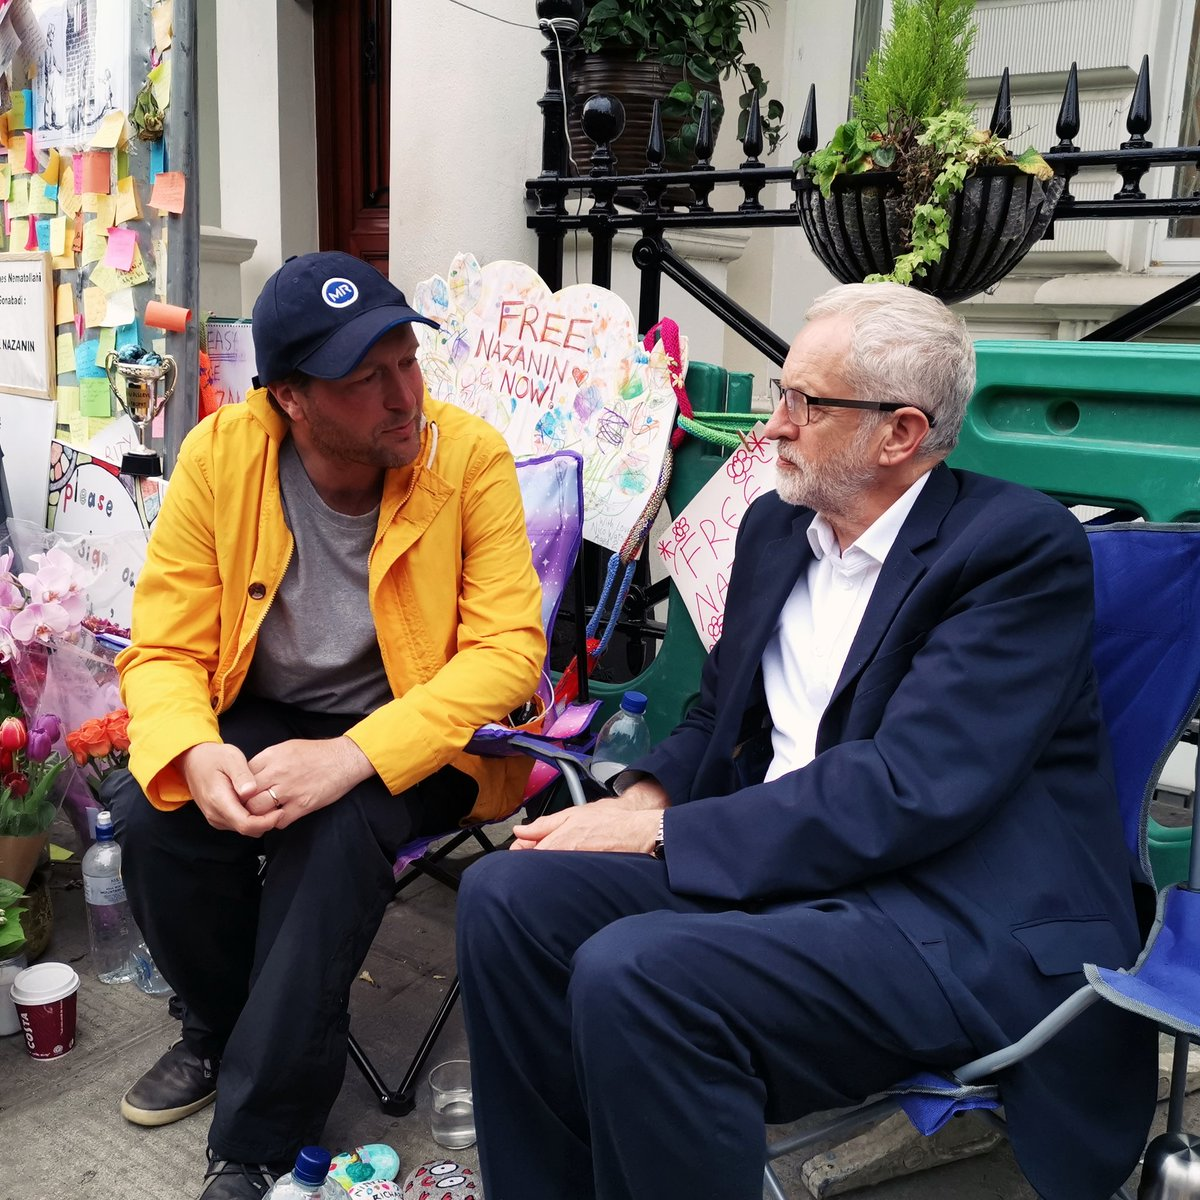 It was a pleasure and an honour to meet Richard Ratcliffe outside the Iranian embassy. I was moved by his strength, optimism and determination in the face of injustice, and his campaign for the freedom of his wife Nazanin. #FreeNazanin